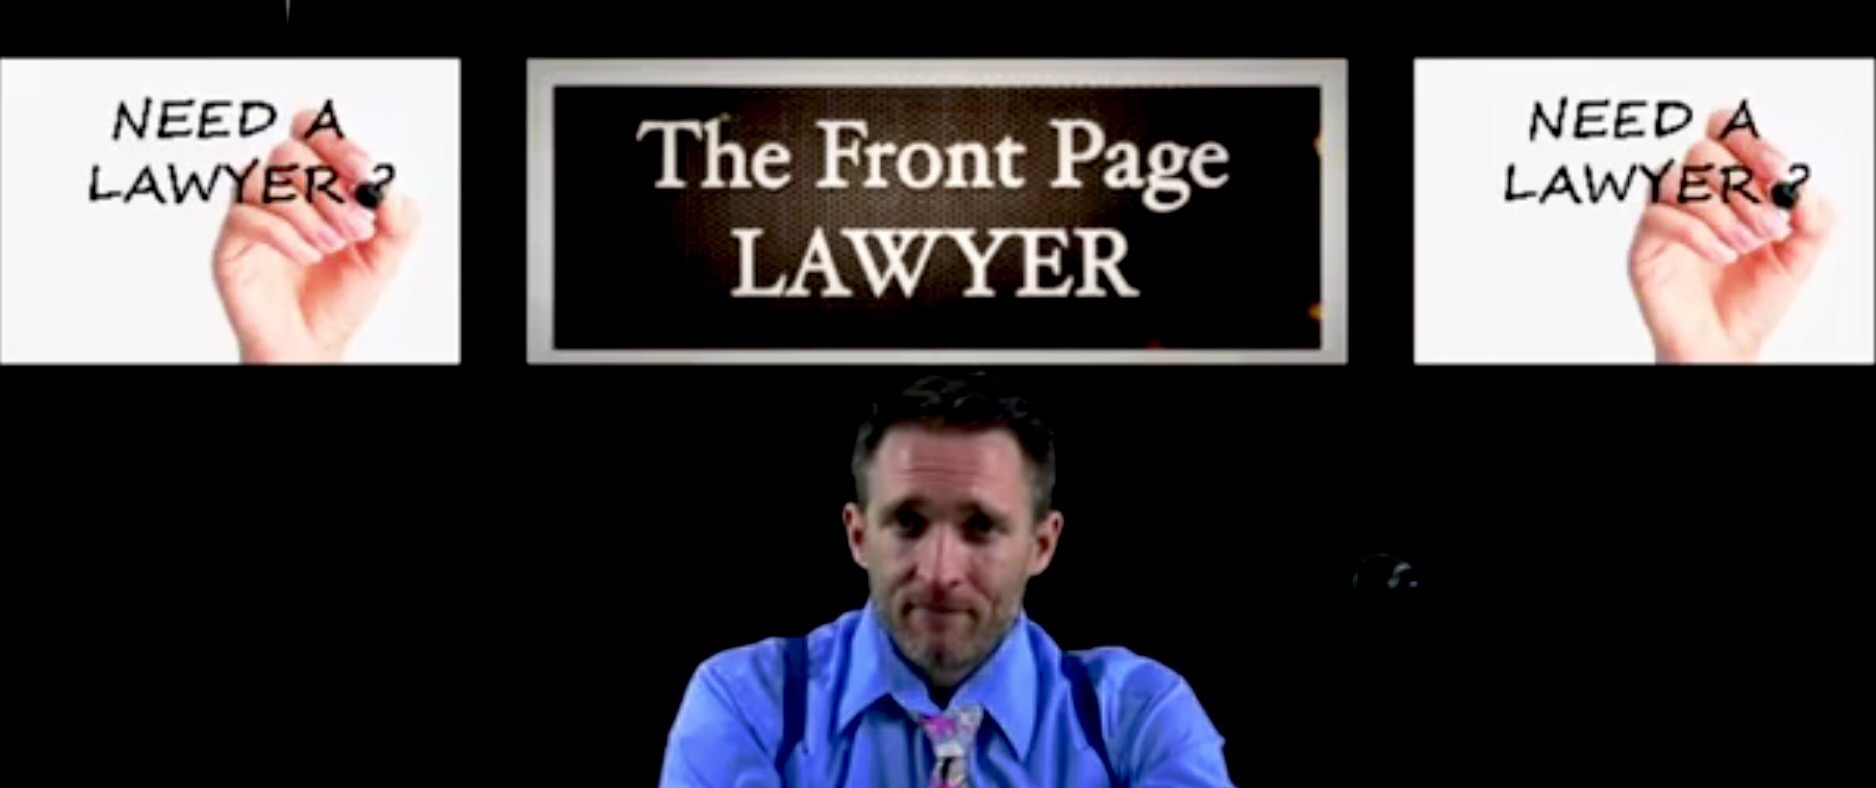 https://vimeo.com/151662990 personal injury attorneys https://vimeo.com/151250250